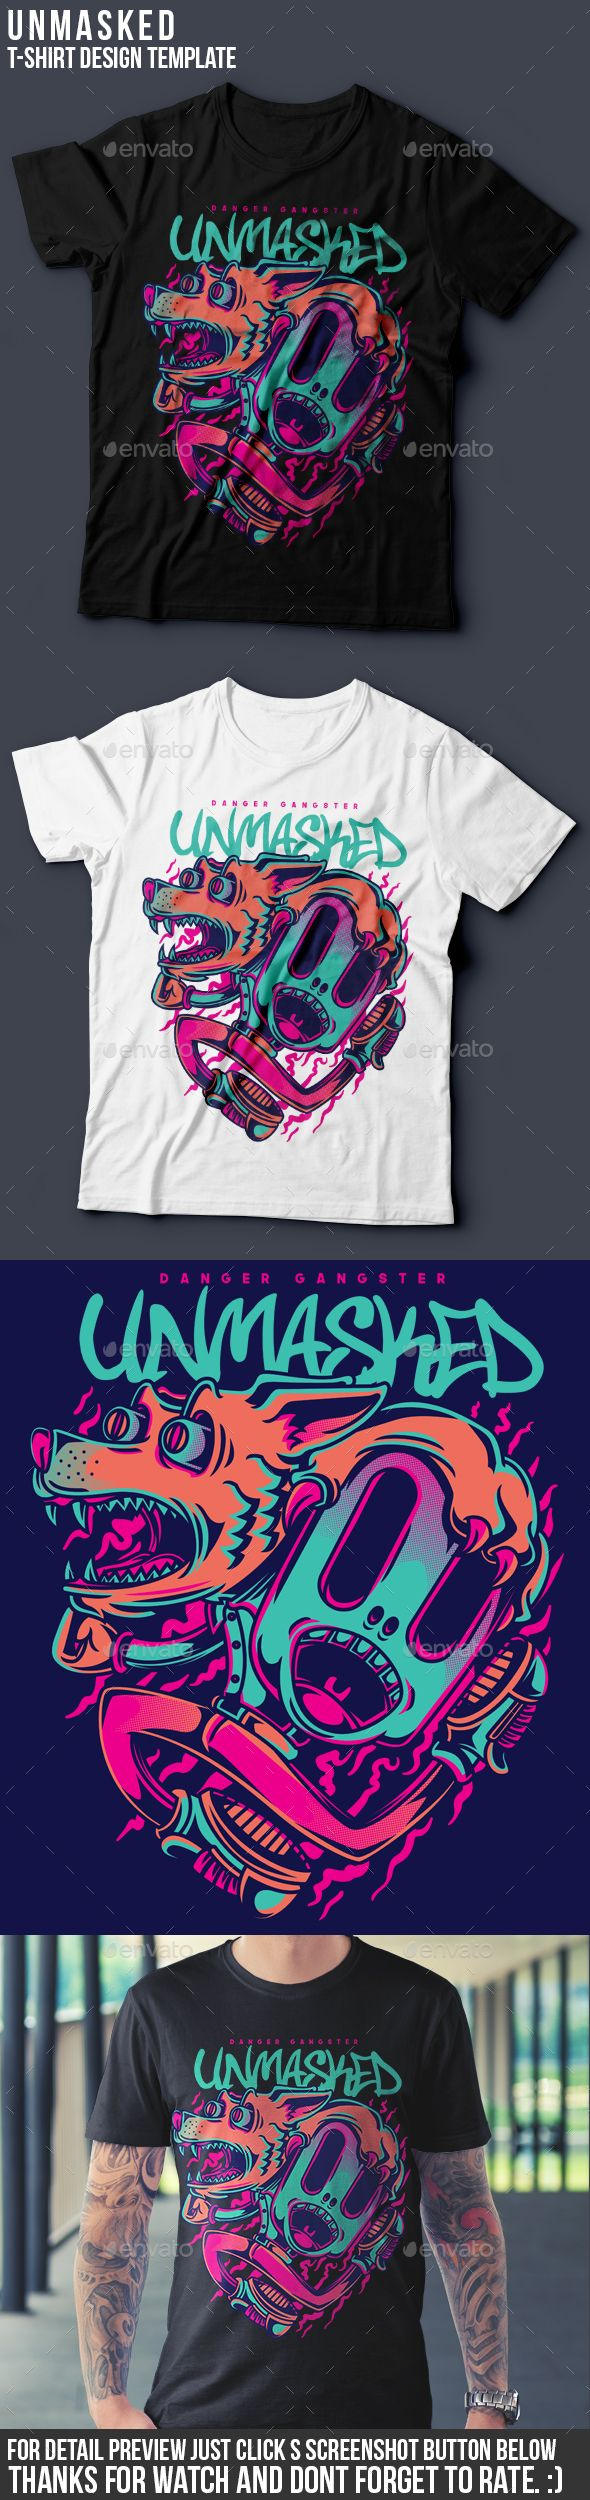 1434 best images about Customisable T-shirt Designs - Graphic ...